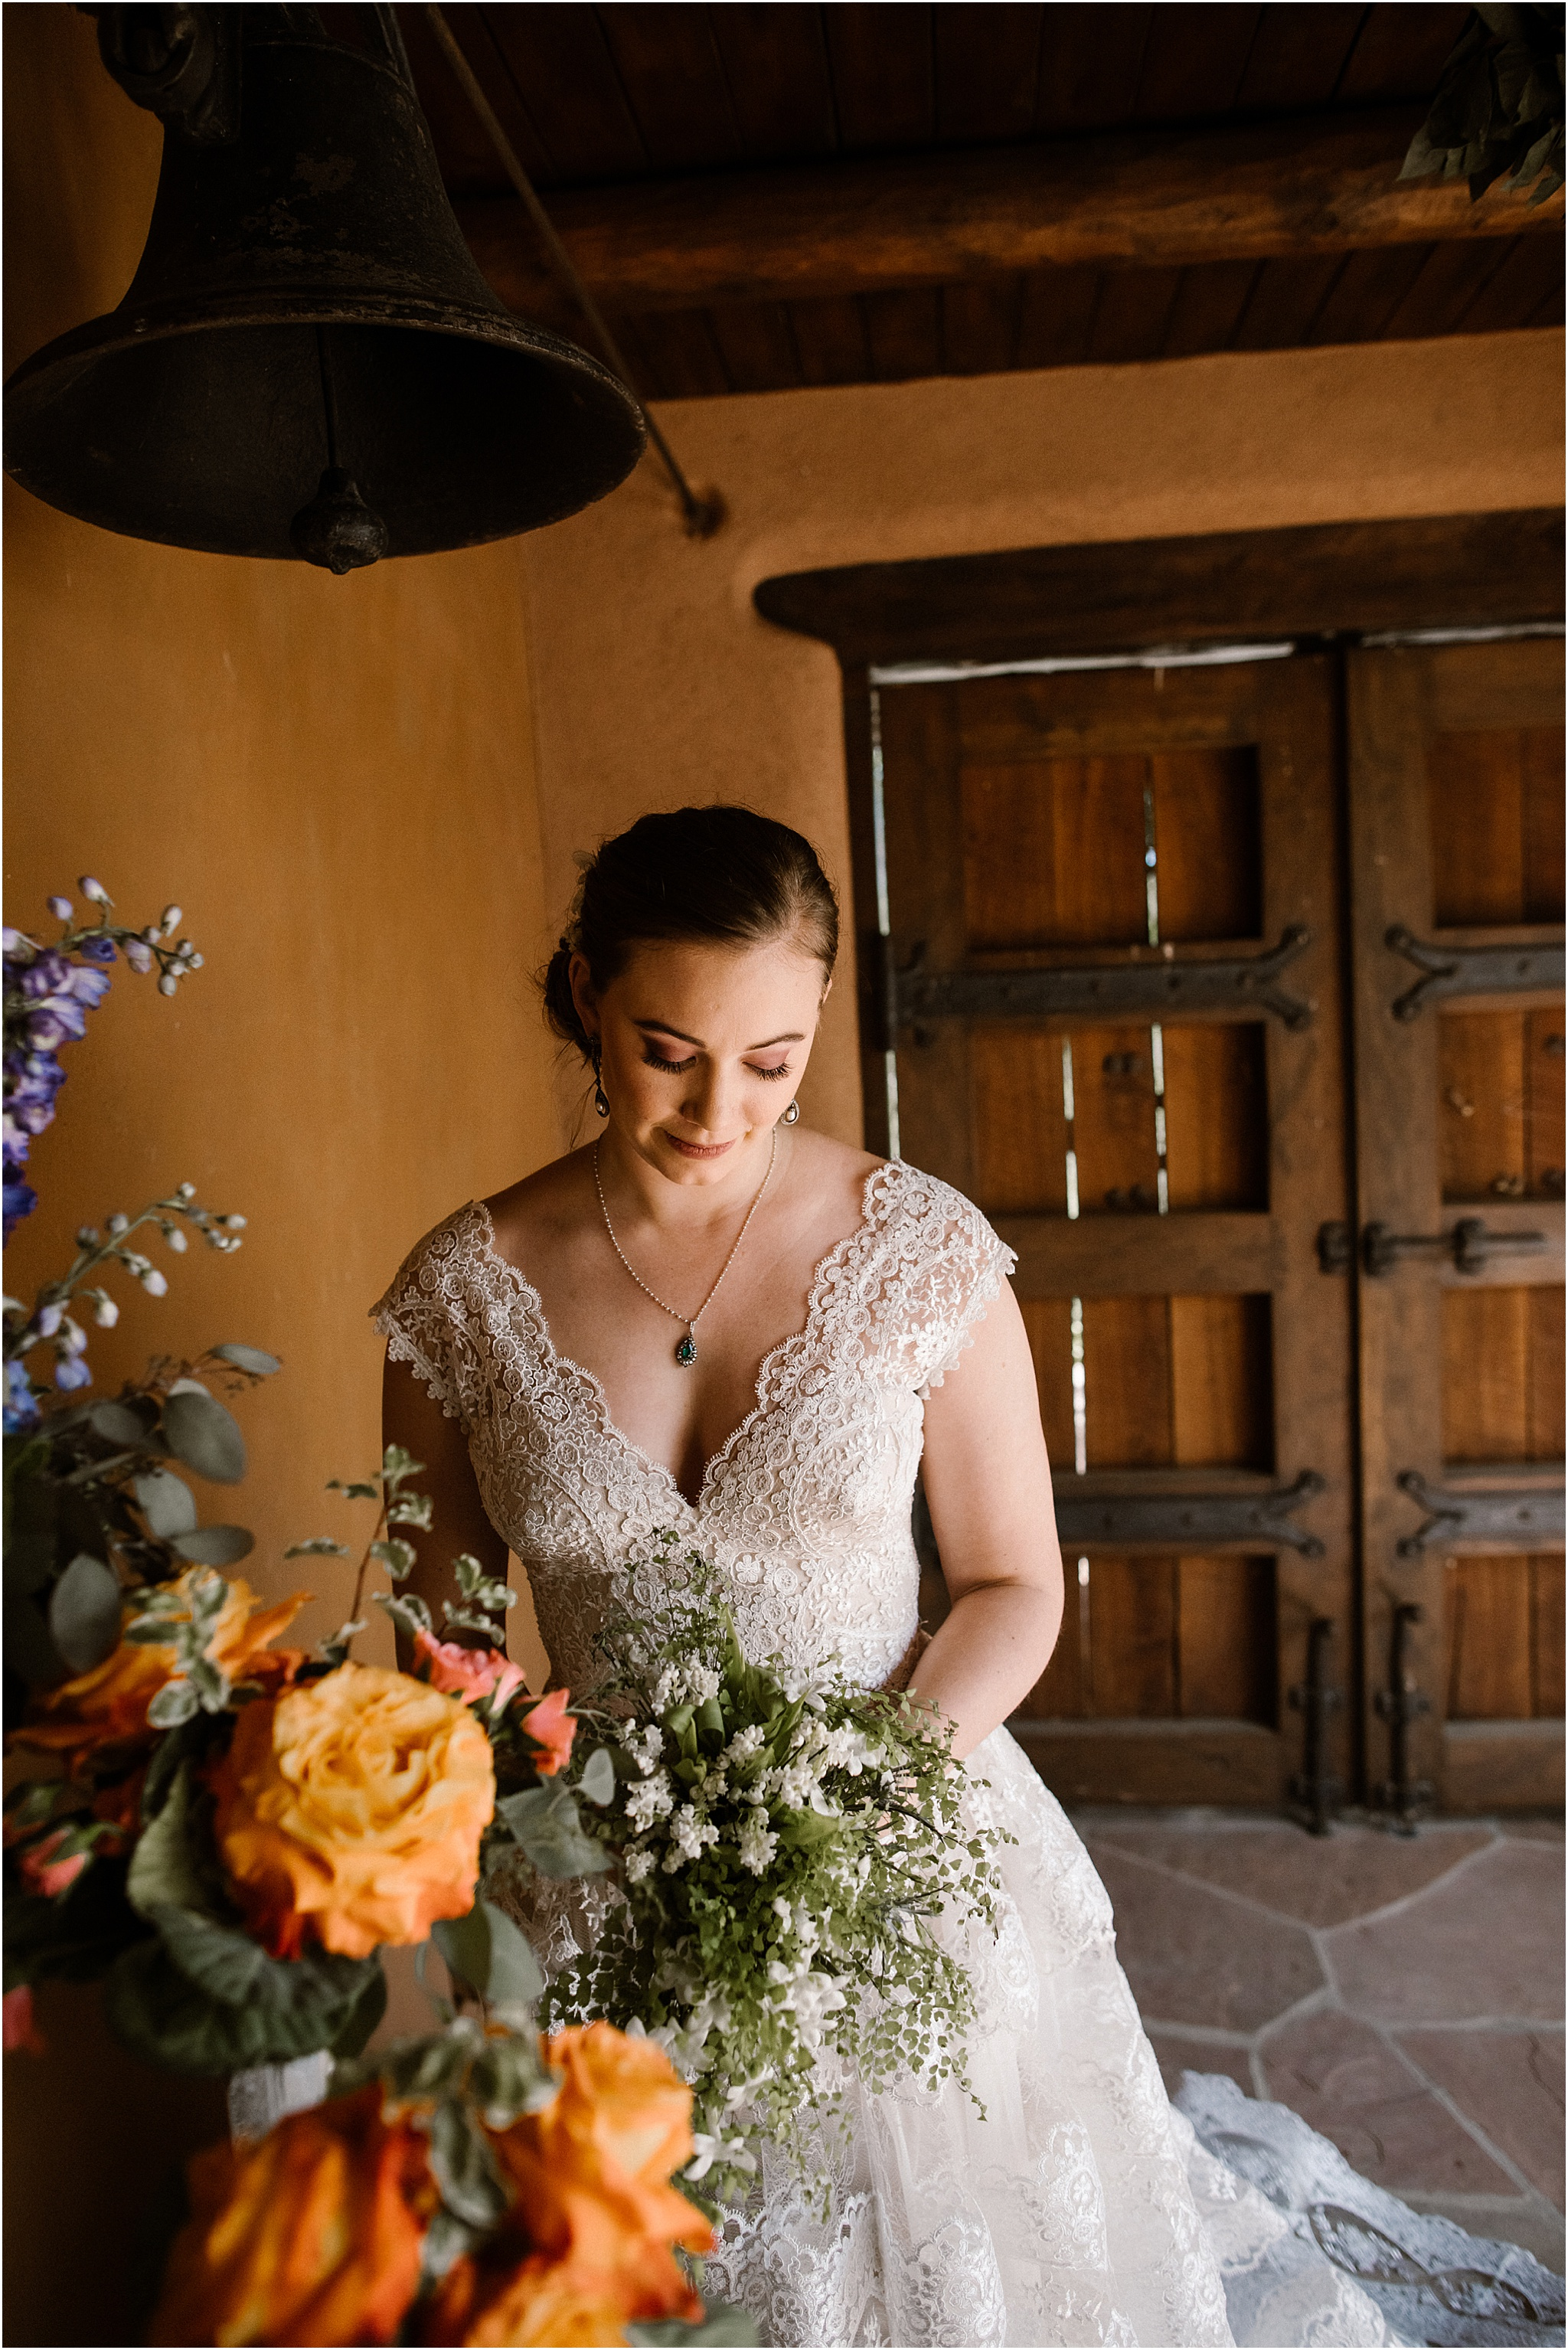 AMELIA_JASON_SANTA FE_ WEDDING_BLUE ROSE PHOTOGRAPHY56